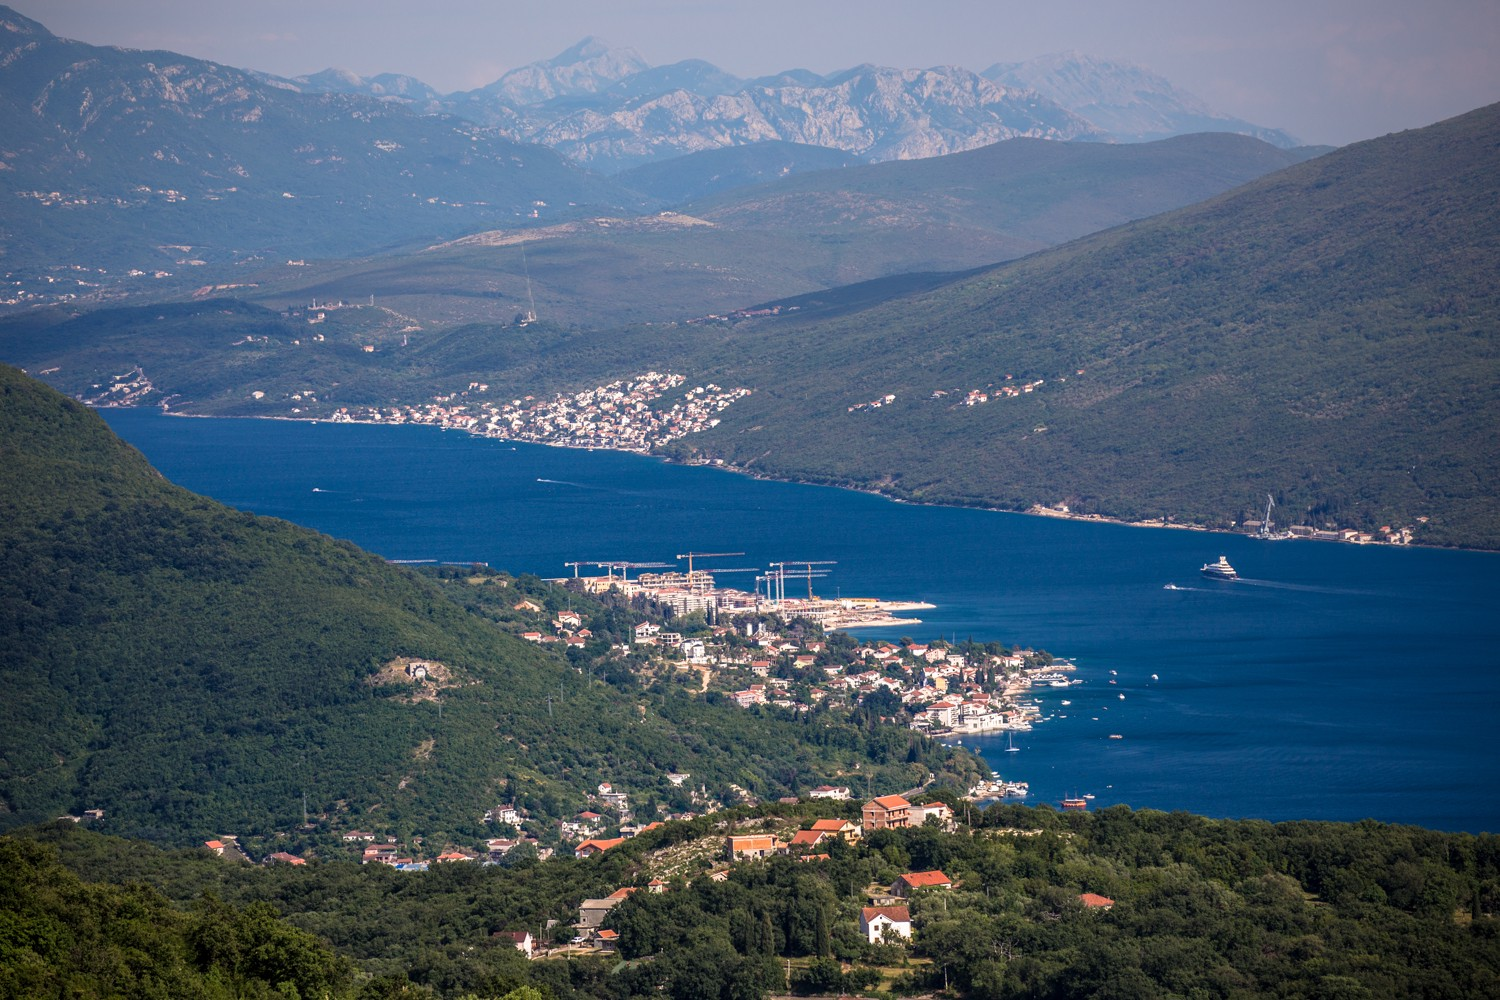 The mouth of the Bay of Kotor, with a cruise ship sailing in